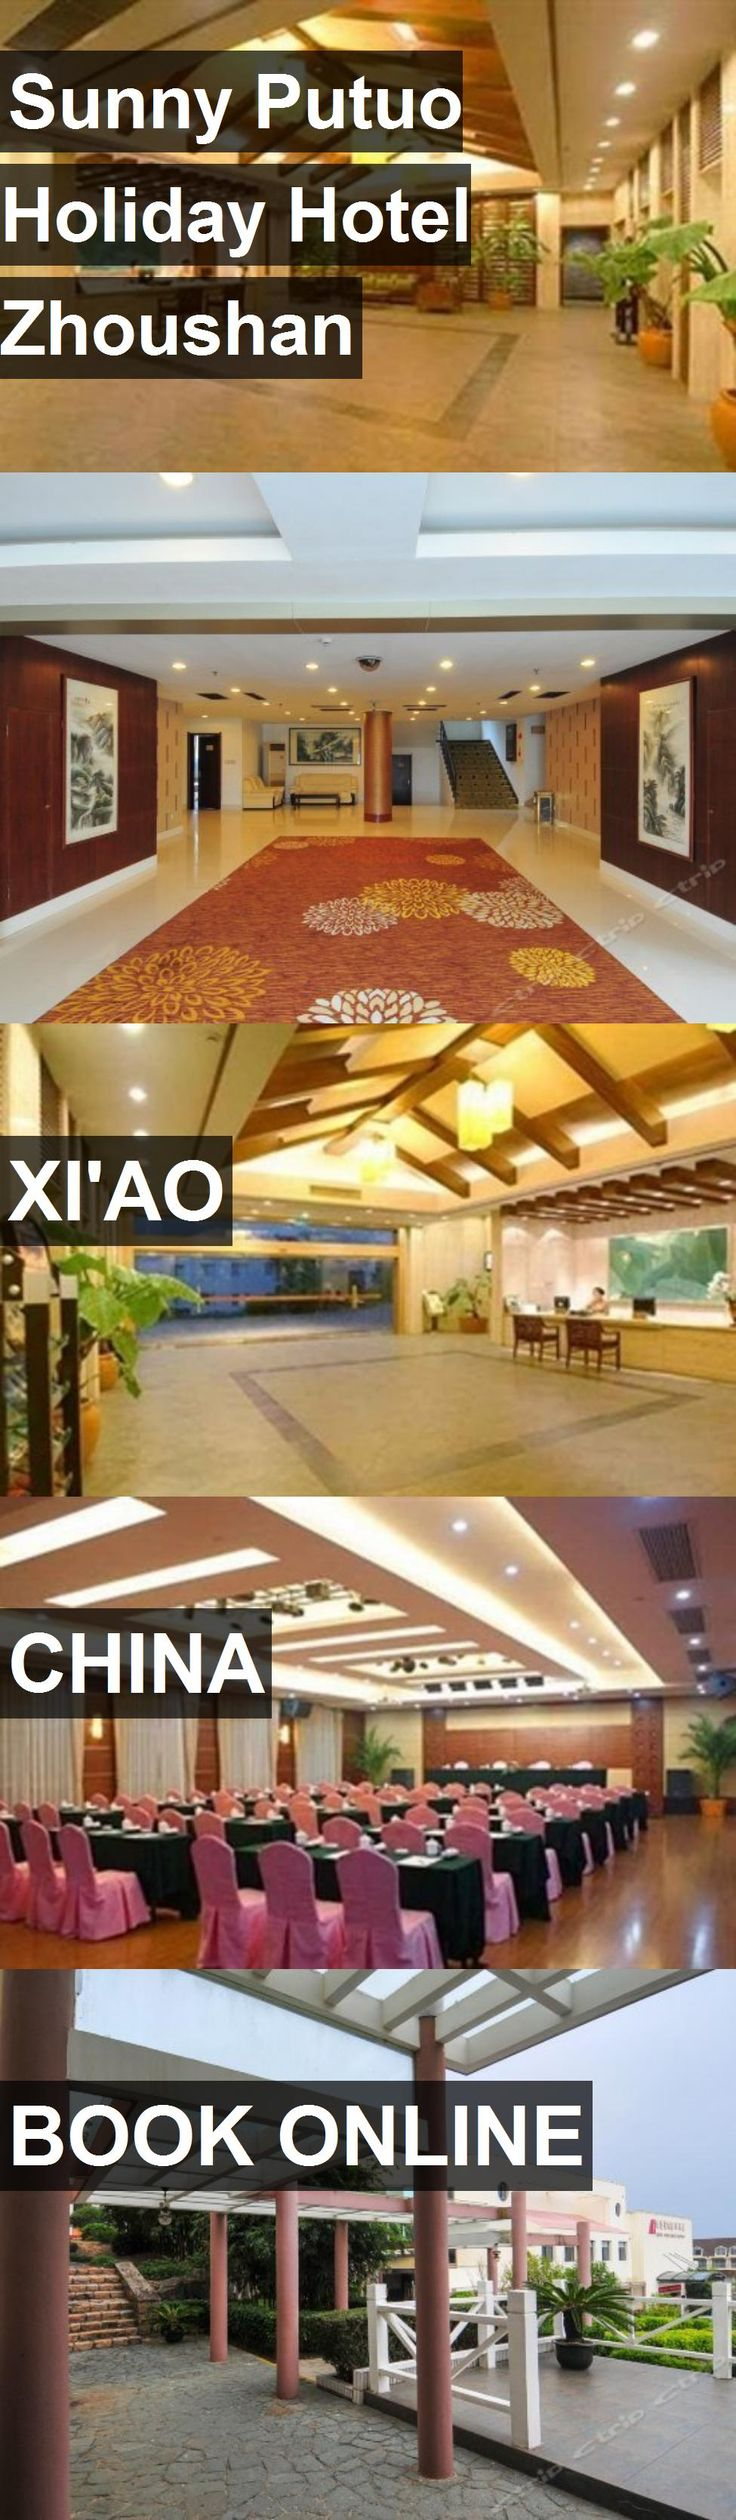 Hotel Sunny Putuo Holiday Hotel Zhoushan in Xi'ao, China. For more information, photos, reviews and best prices please follow the link. #China #Xi'ao #SunnyPutuoHolidayHotelZhoushan #hotel #travel #vacation